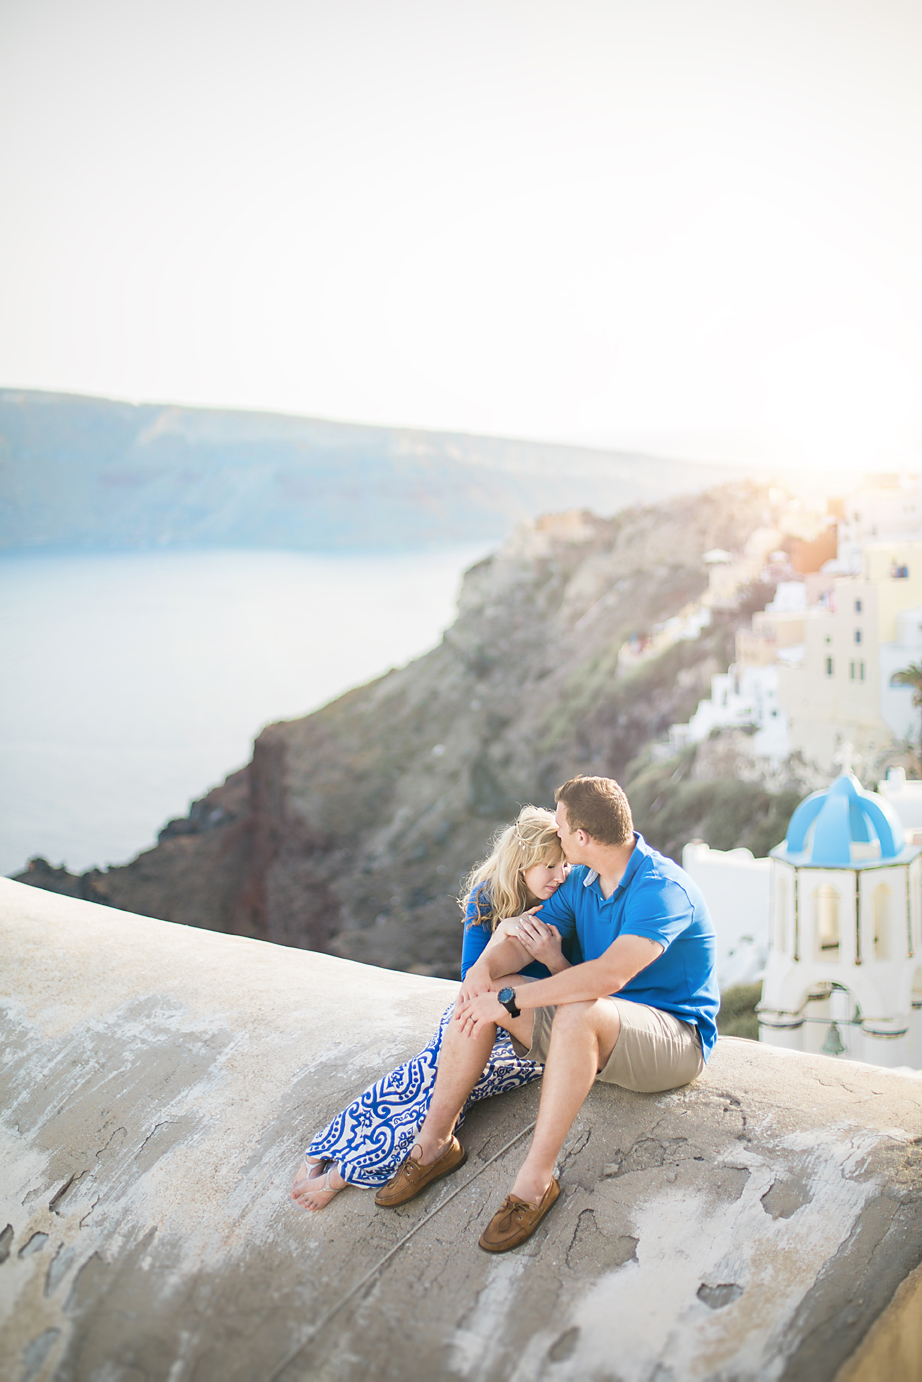 Kaitlyn + Zack - Santorini Elopement Photography - Destination Wedding Photography - Greek Honeymoon - Emily & Co 4 web.jpg